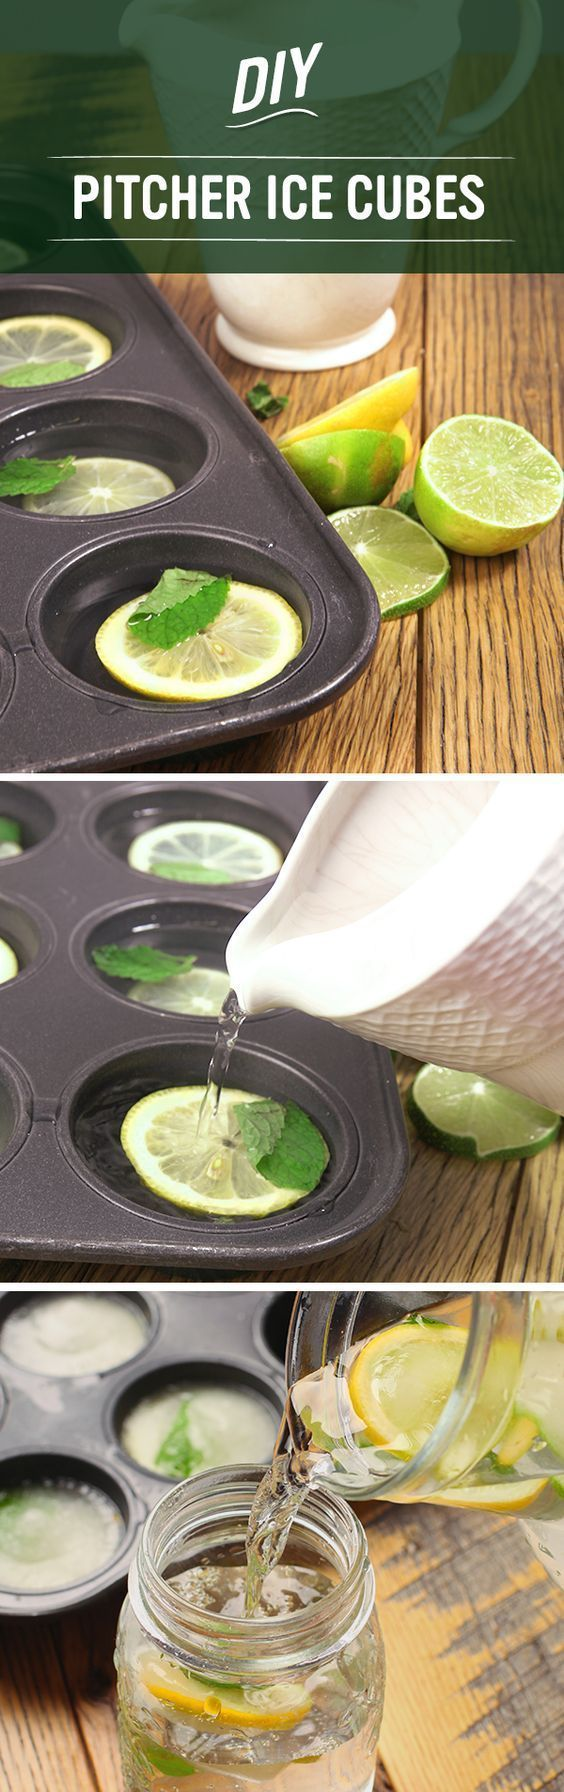 DIY Pitcher Ice Cubes for your summer bbq! Just add water, slices of lemon and limes, and herbs to a muffin tin and freeze! BONUS: click for more genius fridge/freezer hacks!